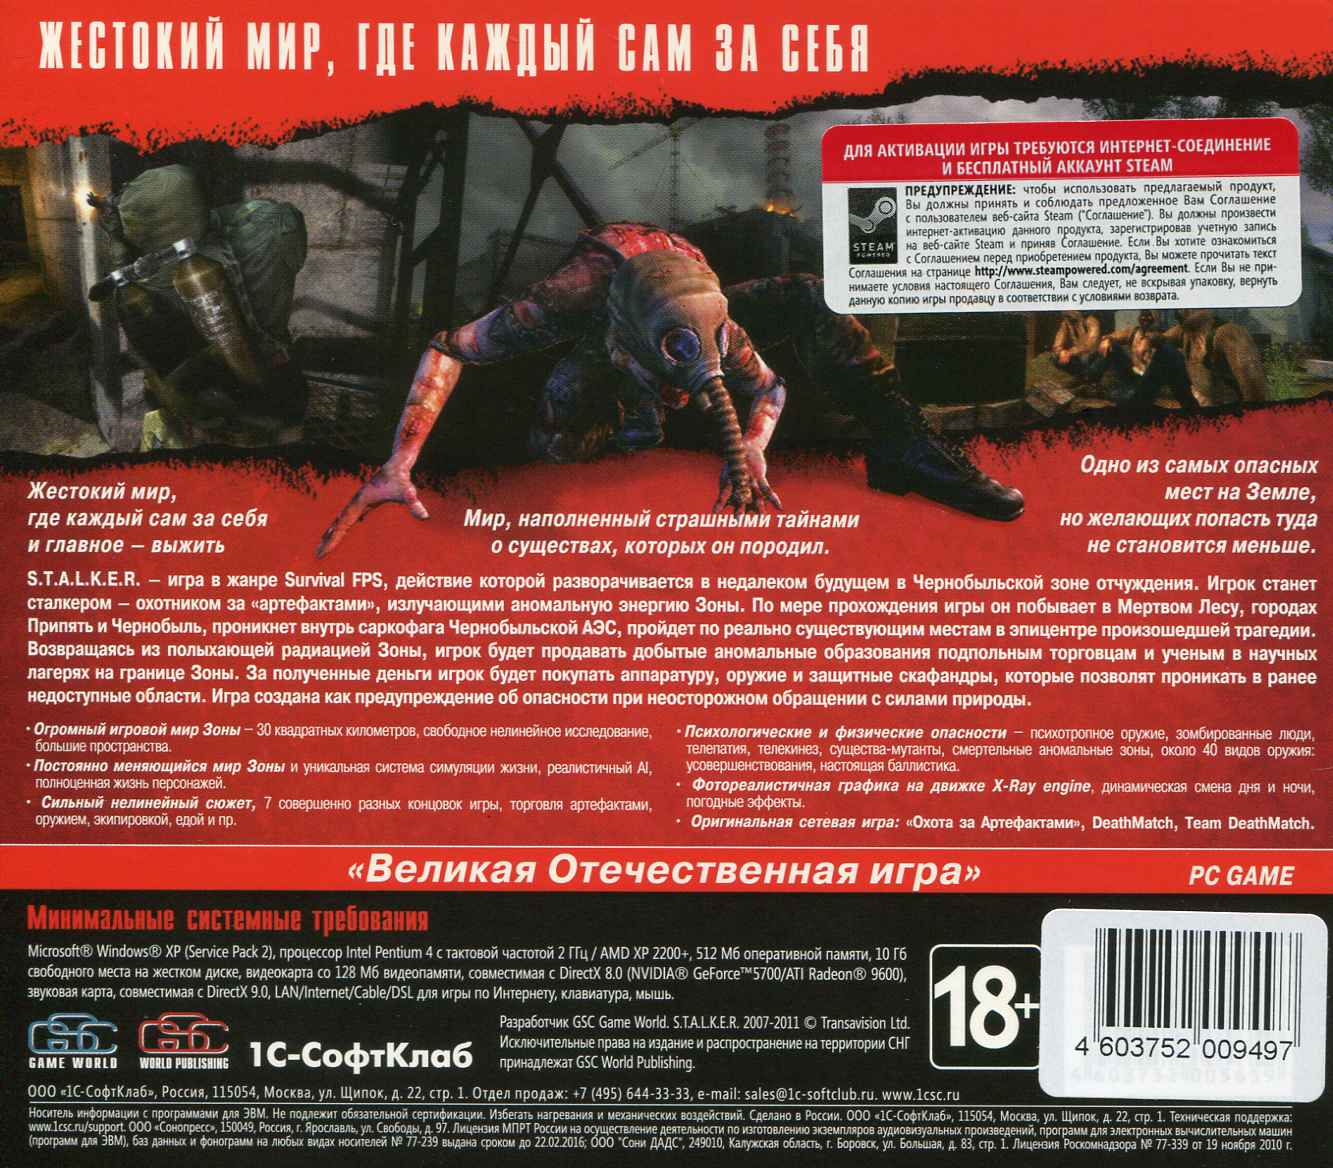 S.T.A.L.K.E.R.: Shadow of Chernobyl (Steam) [STALKER]